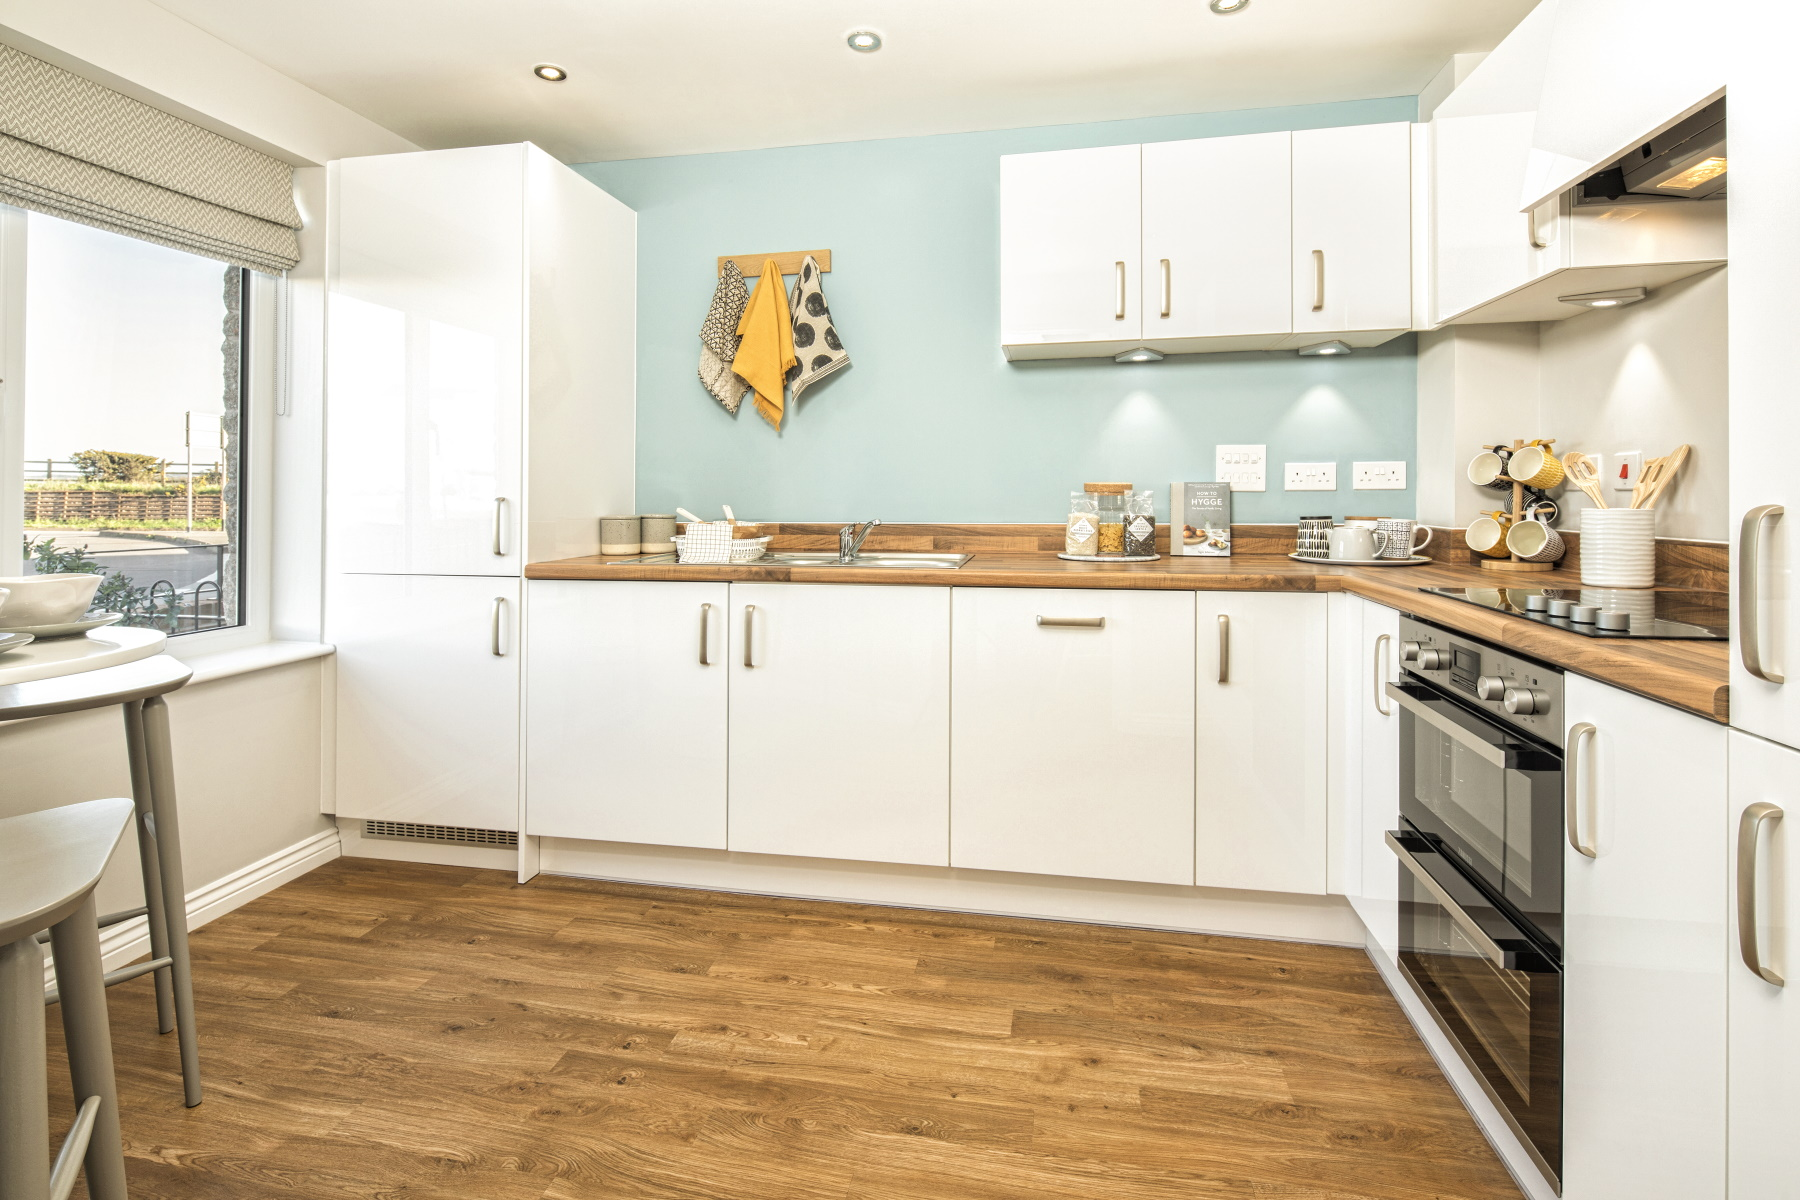 TW Exeter - Sherford - Laurel example kitchen